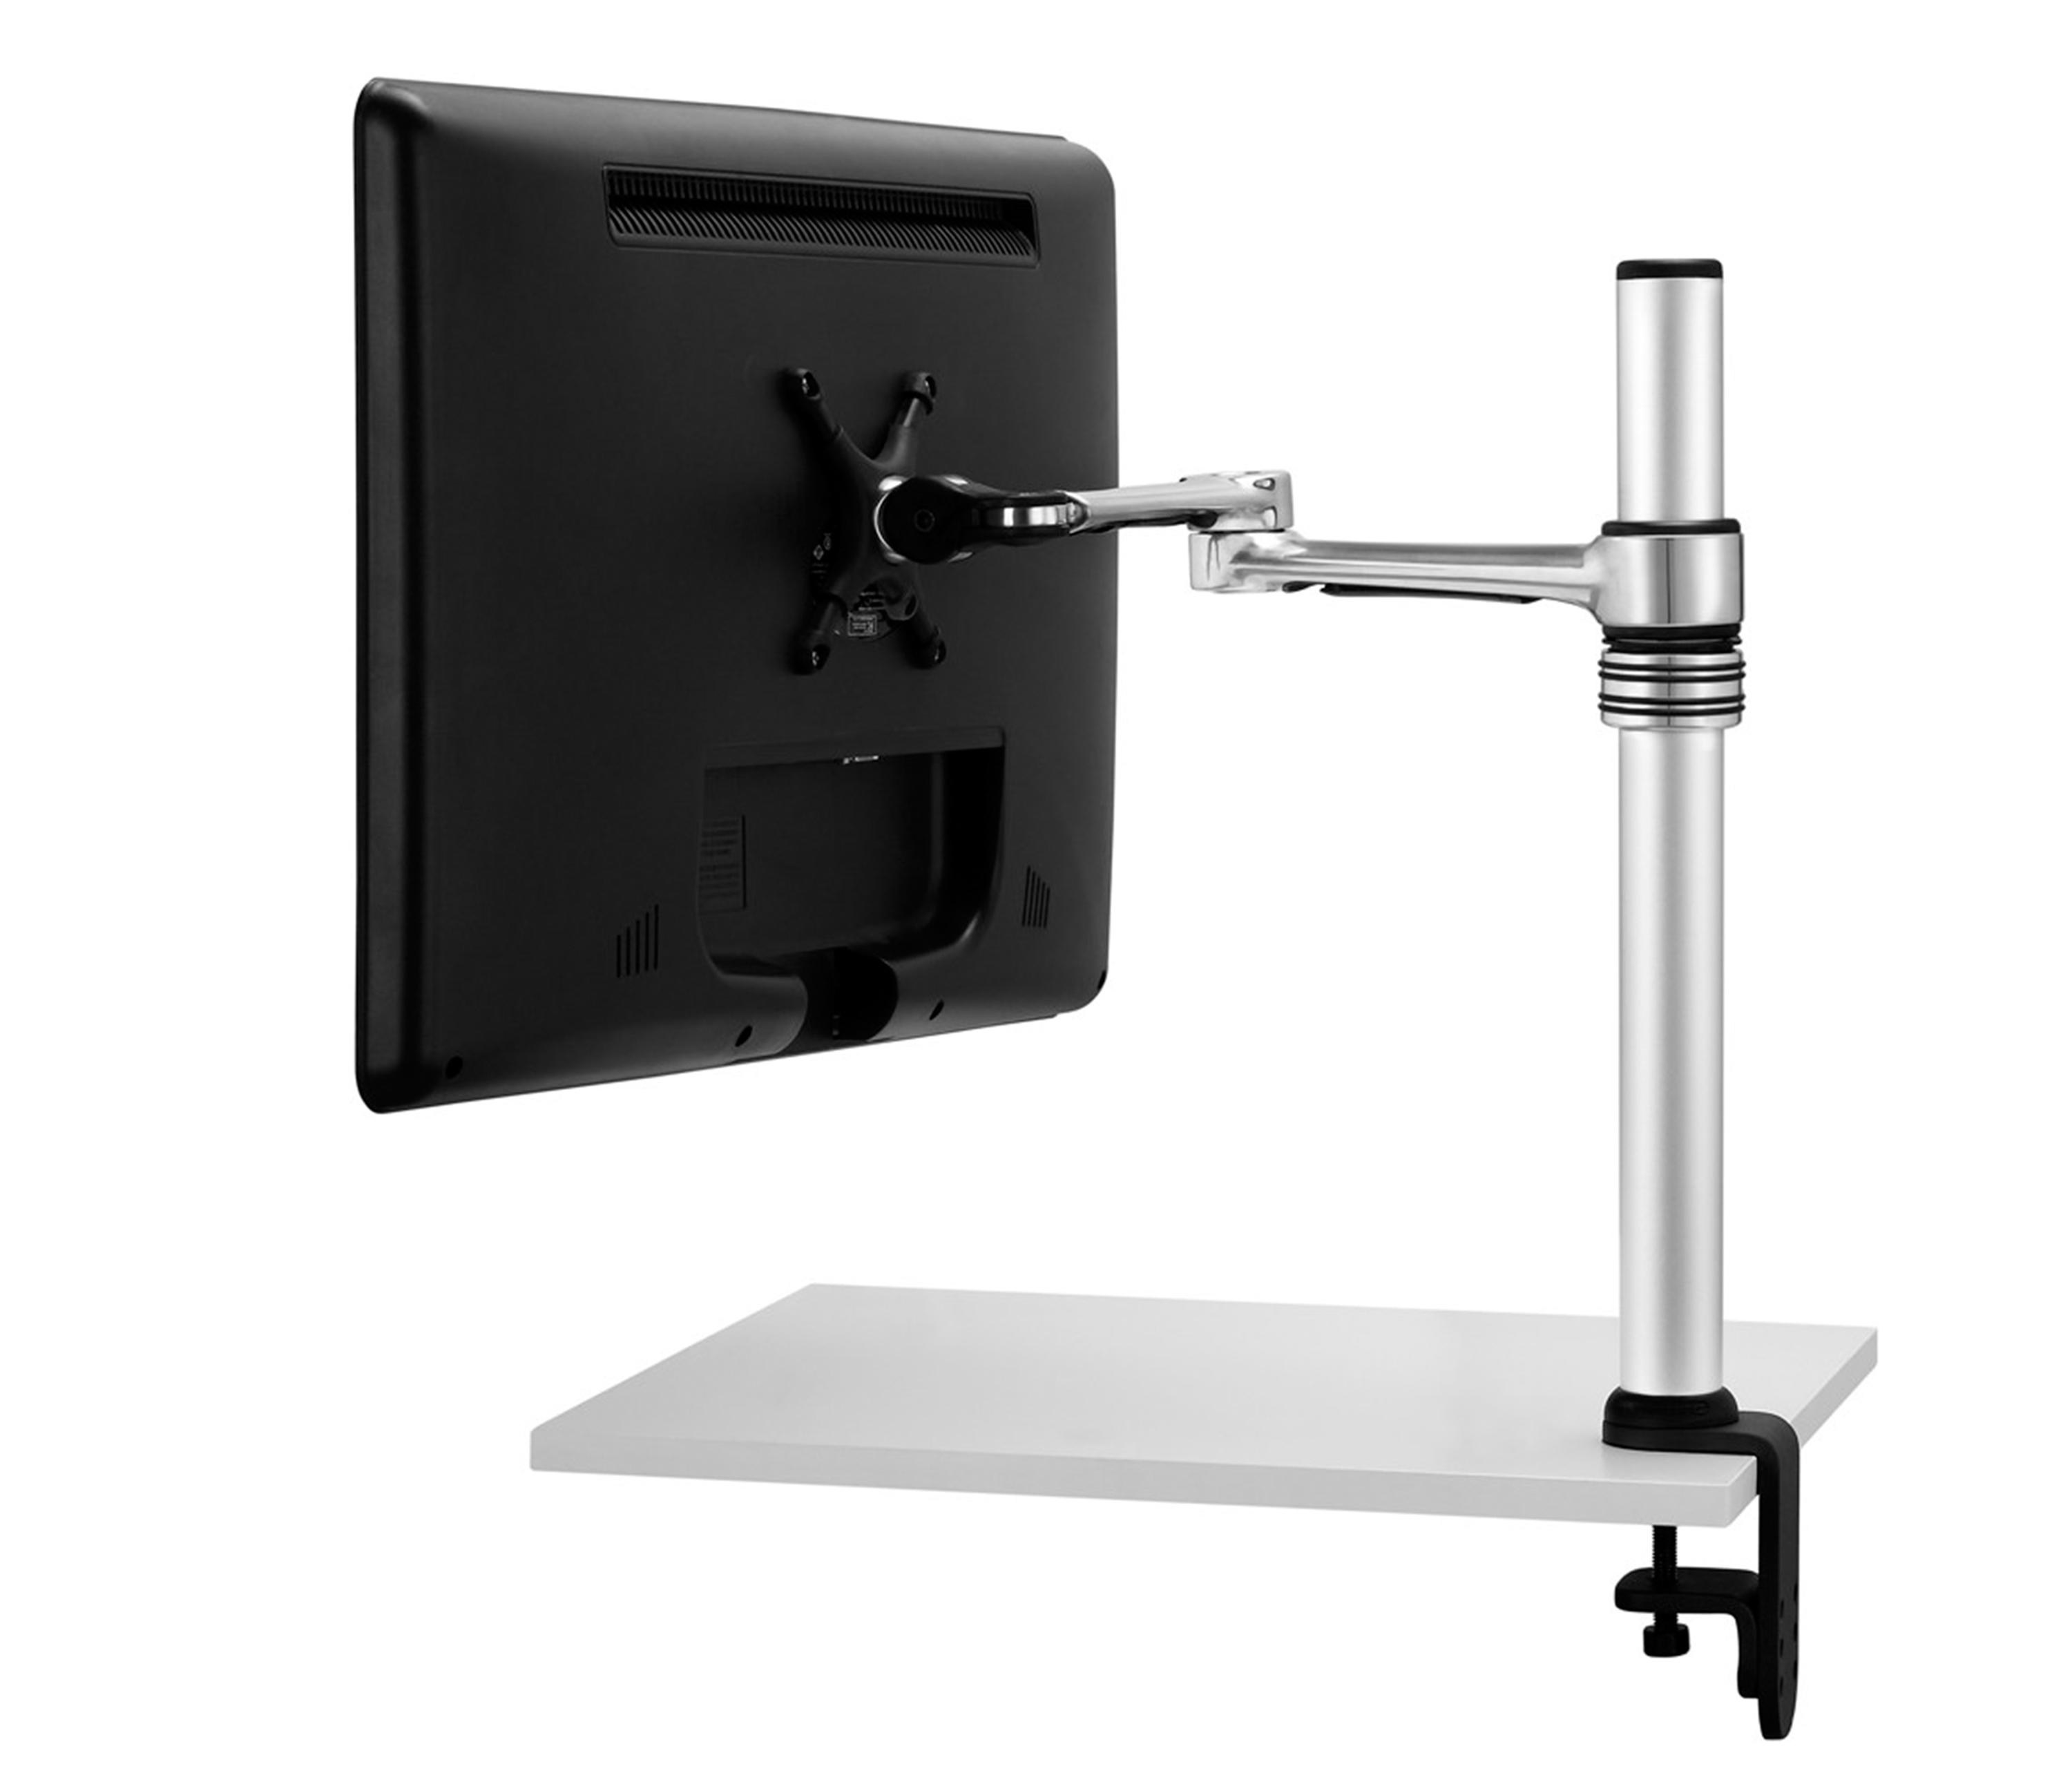 Desk Monitor Arm Vfat  Table Equipment From Atdec. Home Office Desk Top Accessories. Deep Drawer Storage. Corner Desk Table. Ikea Table Top Desk. Jewelry Desk. Small Under Desk Refrigerator. Big Coffee Tables. Step 2 Desk